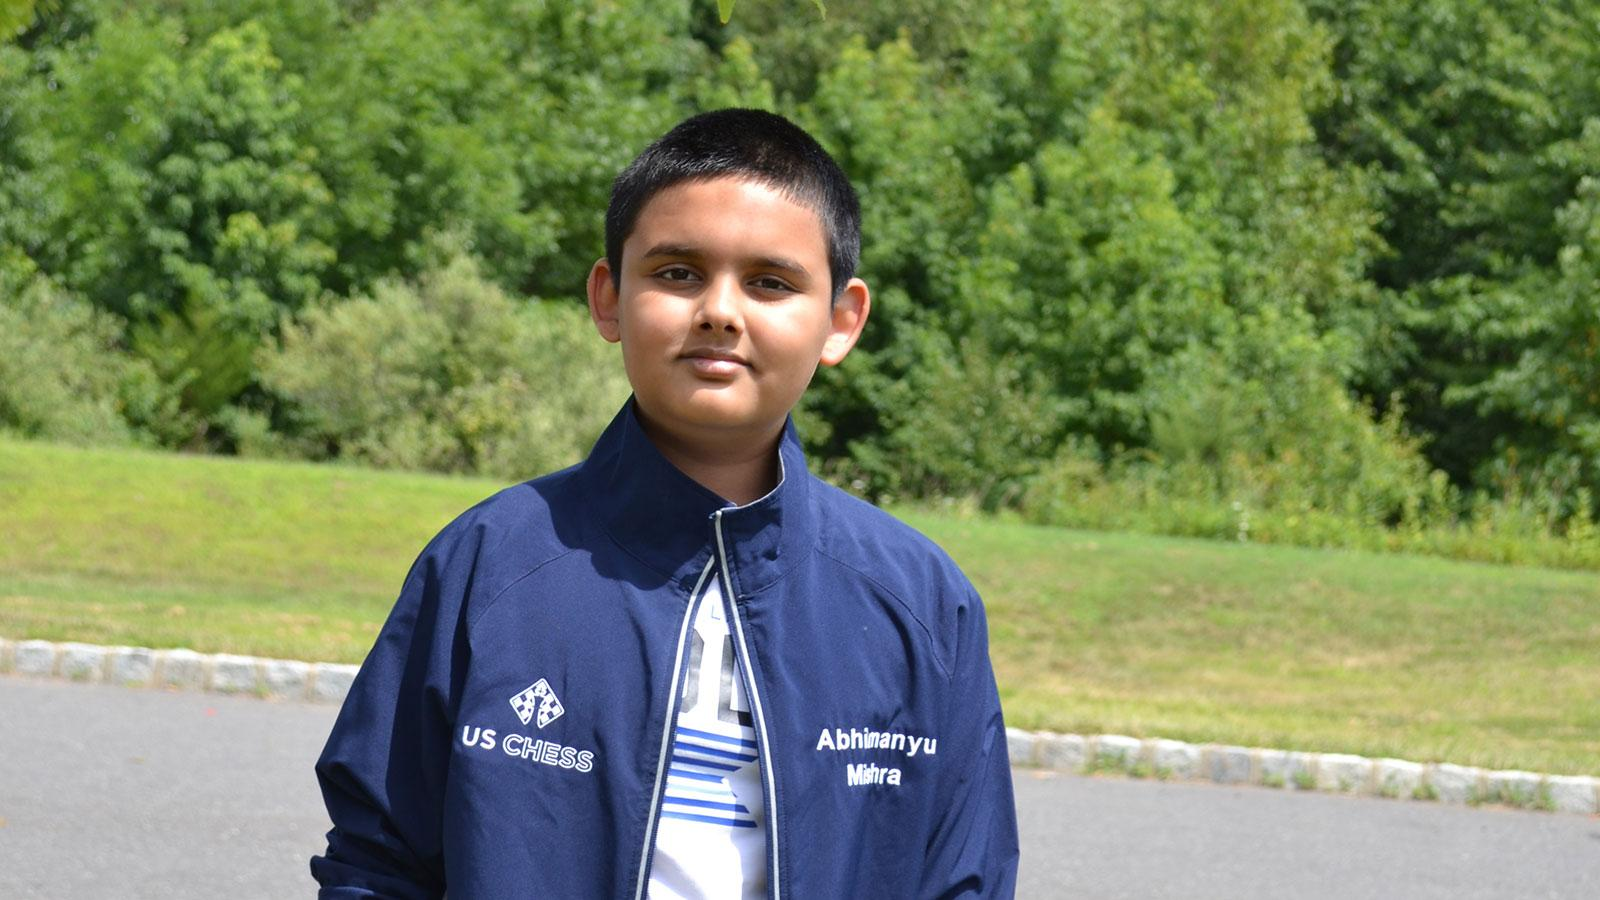 Abhimanyu Mishra Youngest IM In History - Chess.com